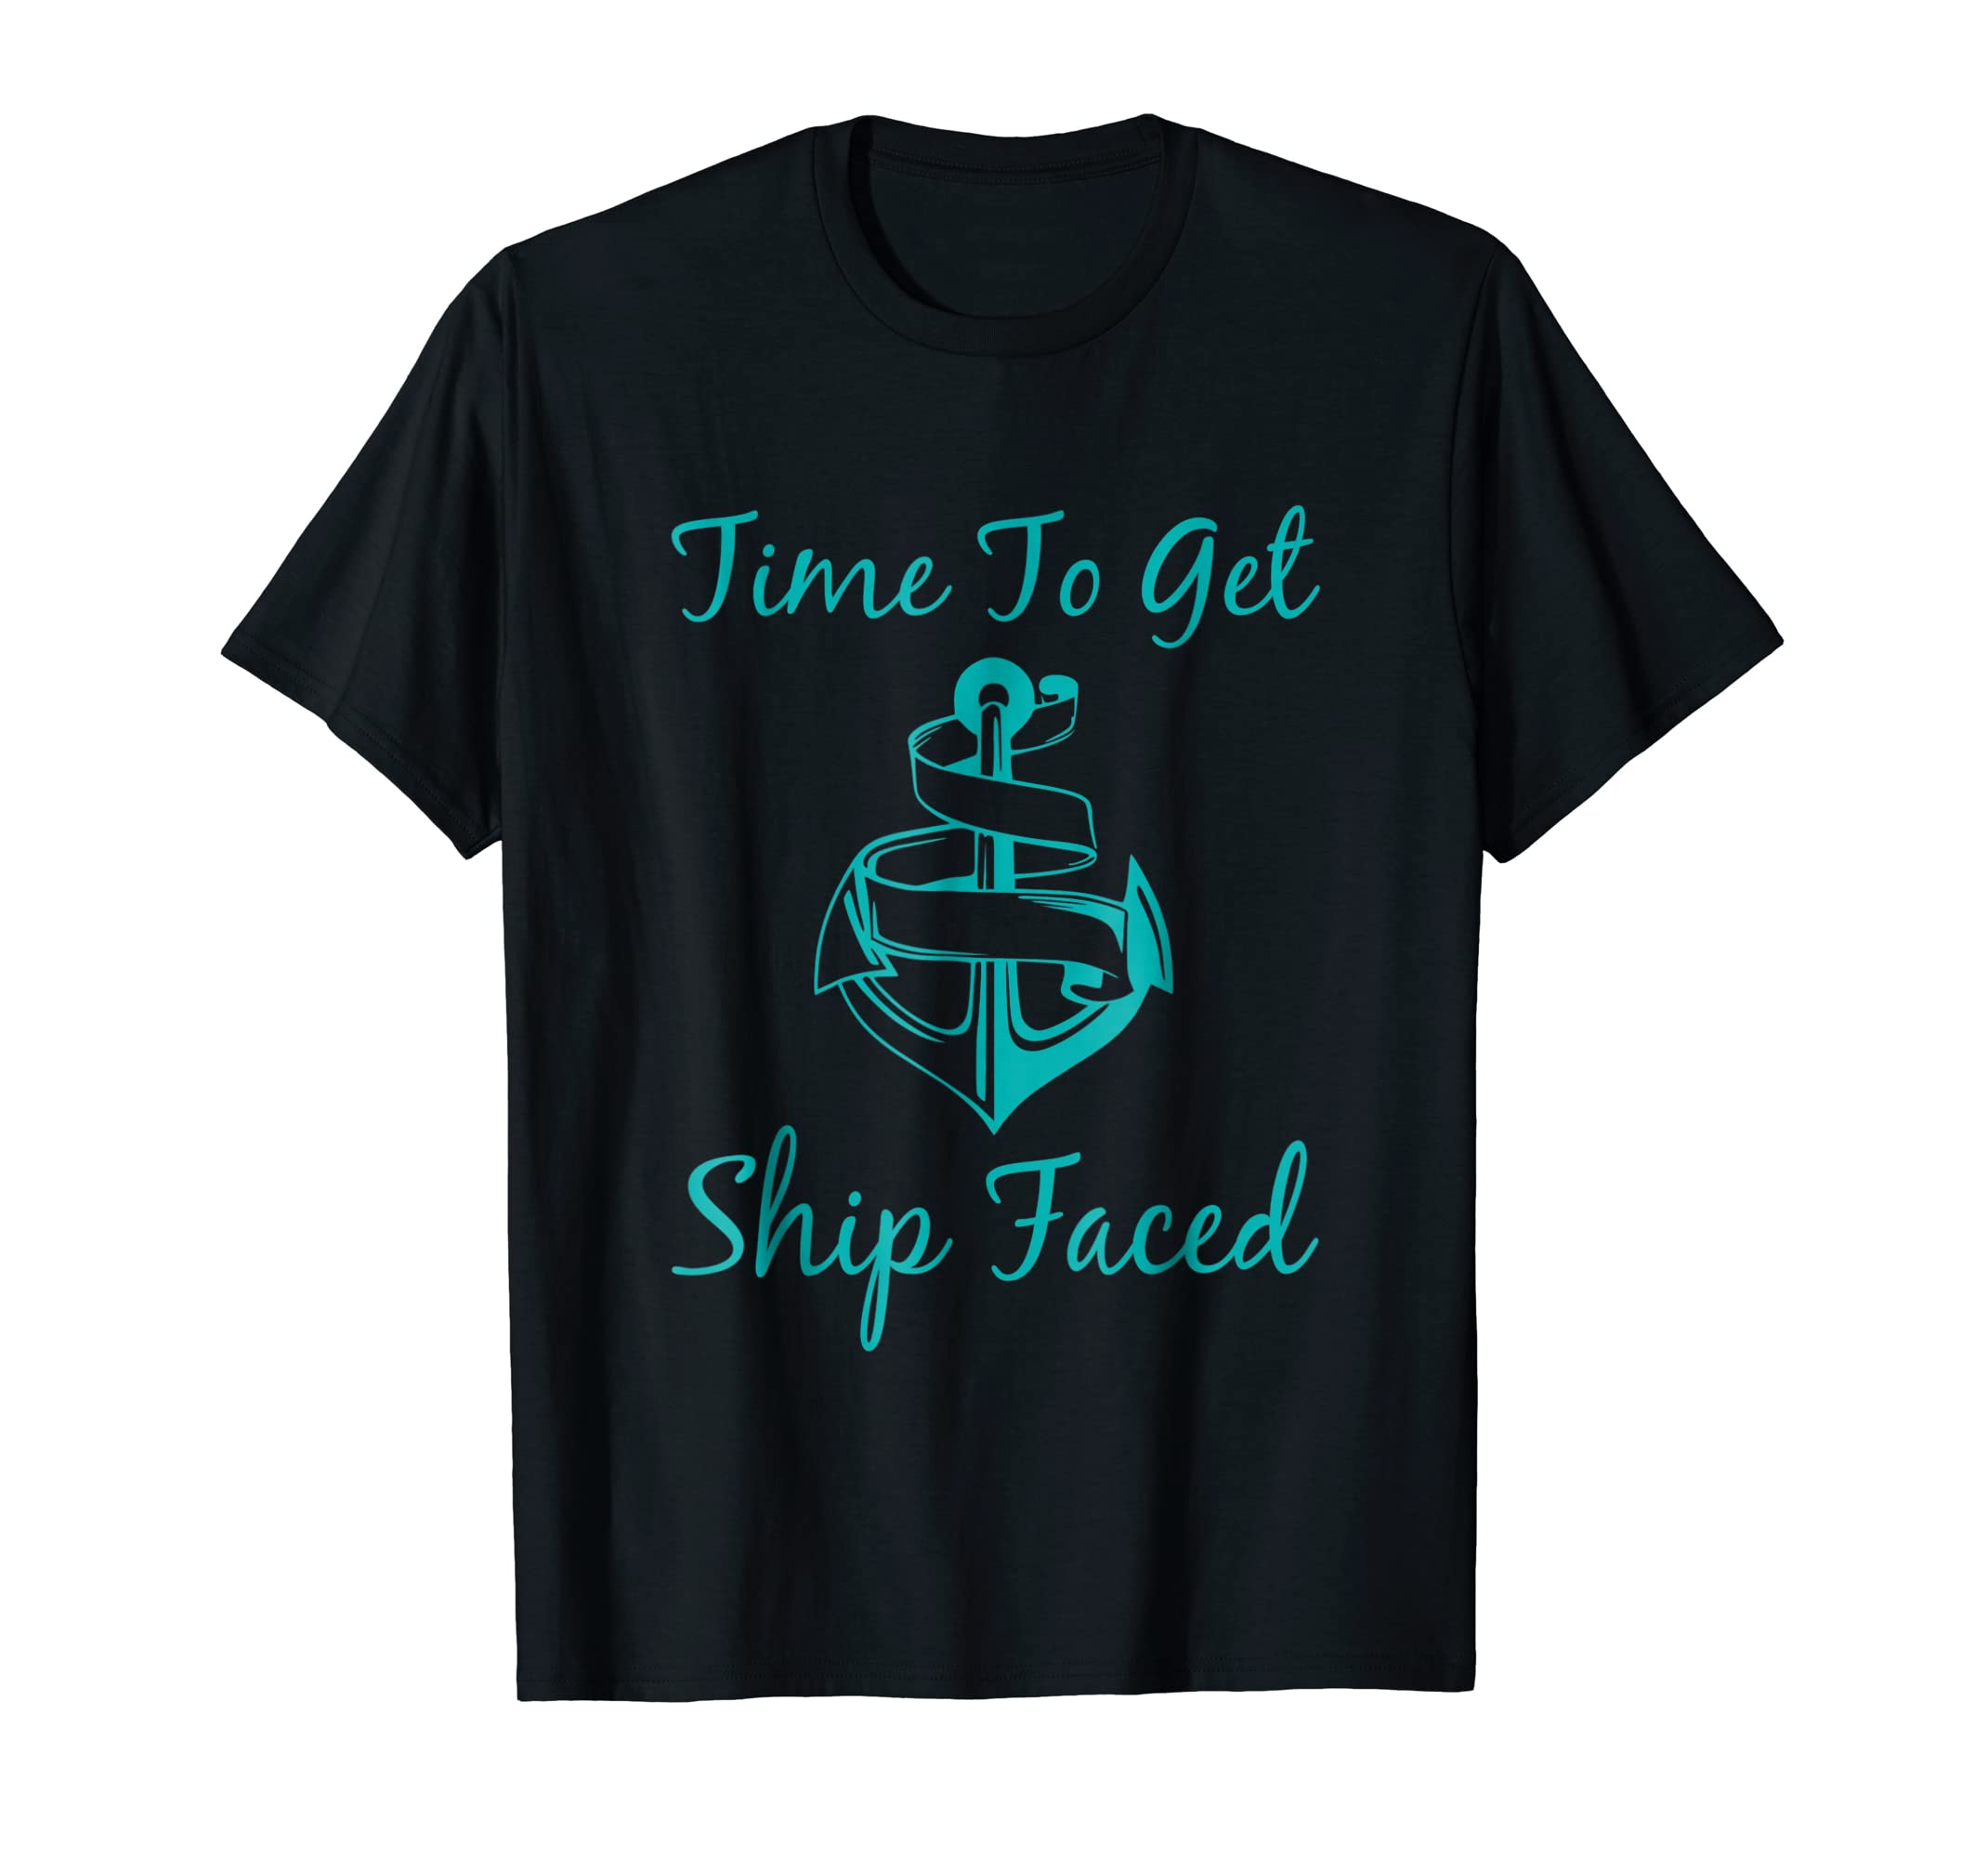 00d5fb759 Amazon.com: Funny Boat Shirts: Let's Get Ship Faced T-Shirt: Clothing